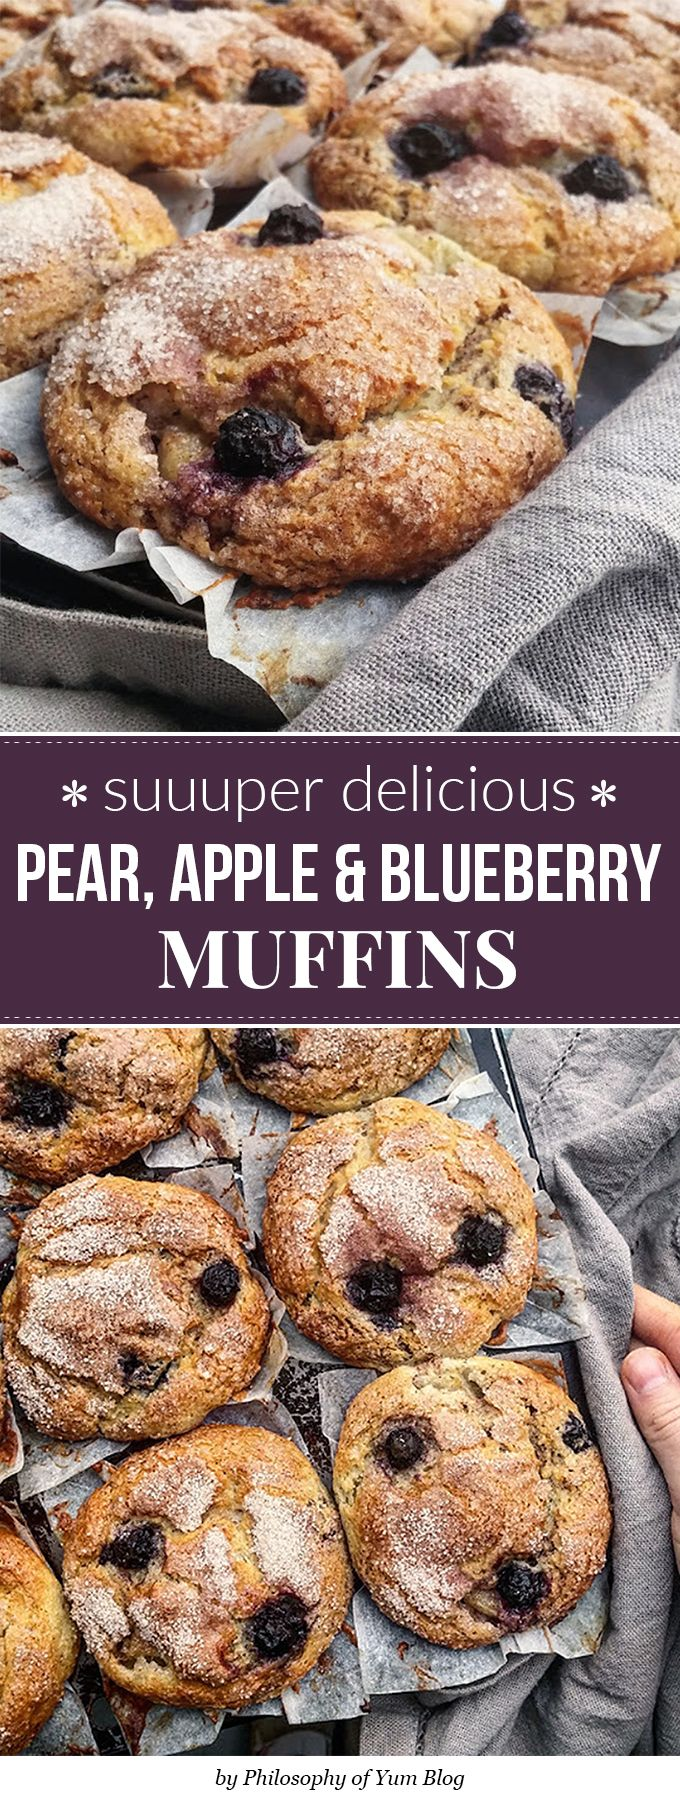 These Pear, Apple & Blueberry muffins are so light, tender and moist! Great muffins for an on-the-go healthy breakfast. The crunchy cinnamon sugar crust on top pairs perfectly with the muffin's soft crumb underneath. And the bursts of fresh, dark blue-purple blueberries throughout the muffins just makes you swoon!